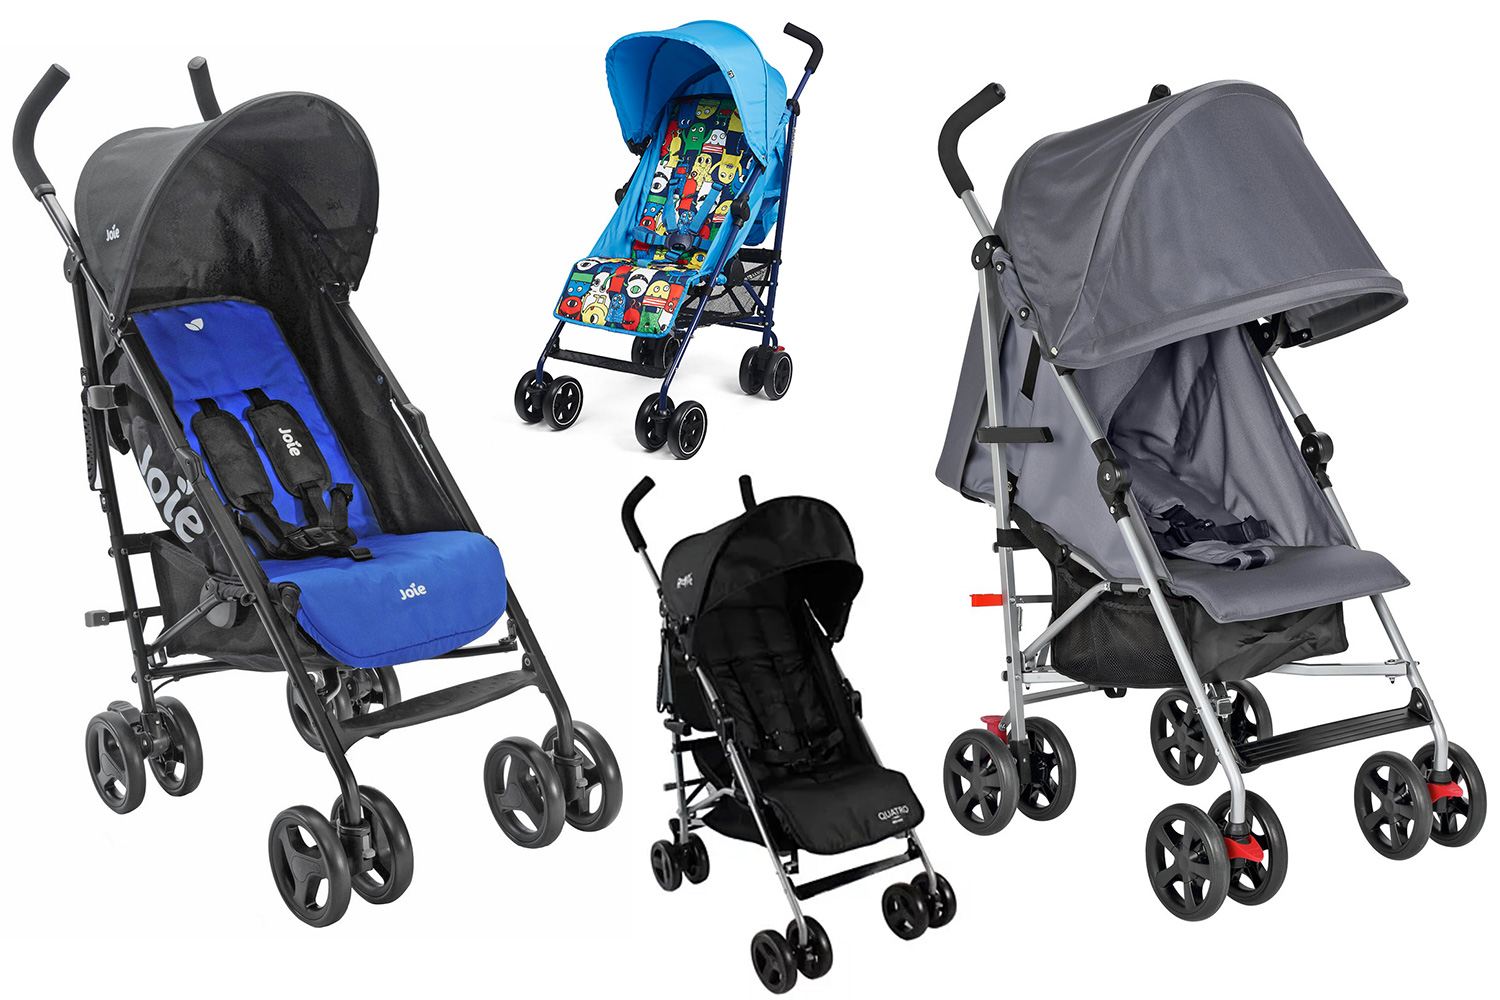 3 Wheel Prams Argos Cheap And Best Value Strollers 2019 The Sun Uk